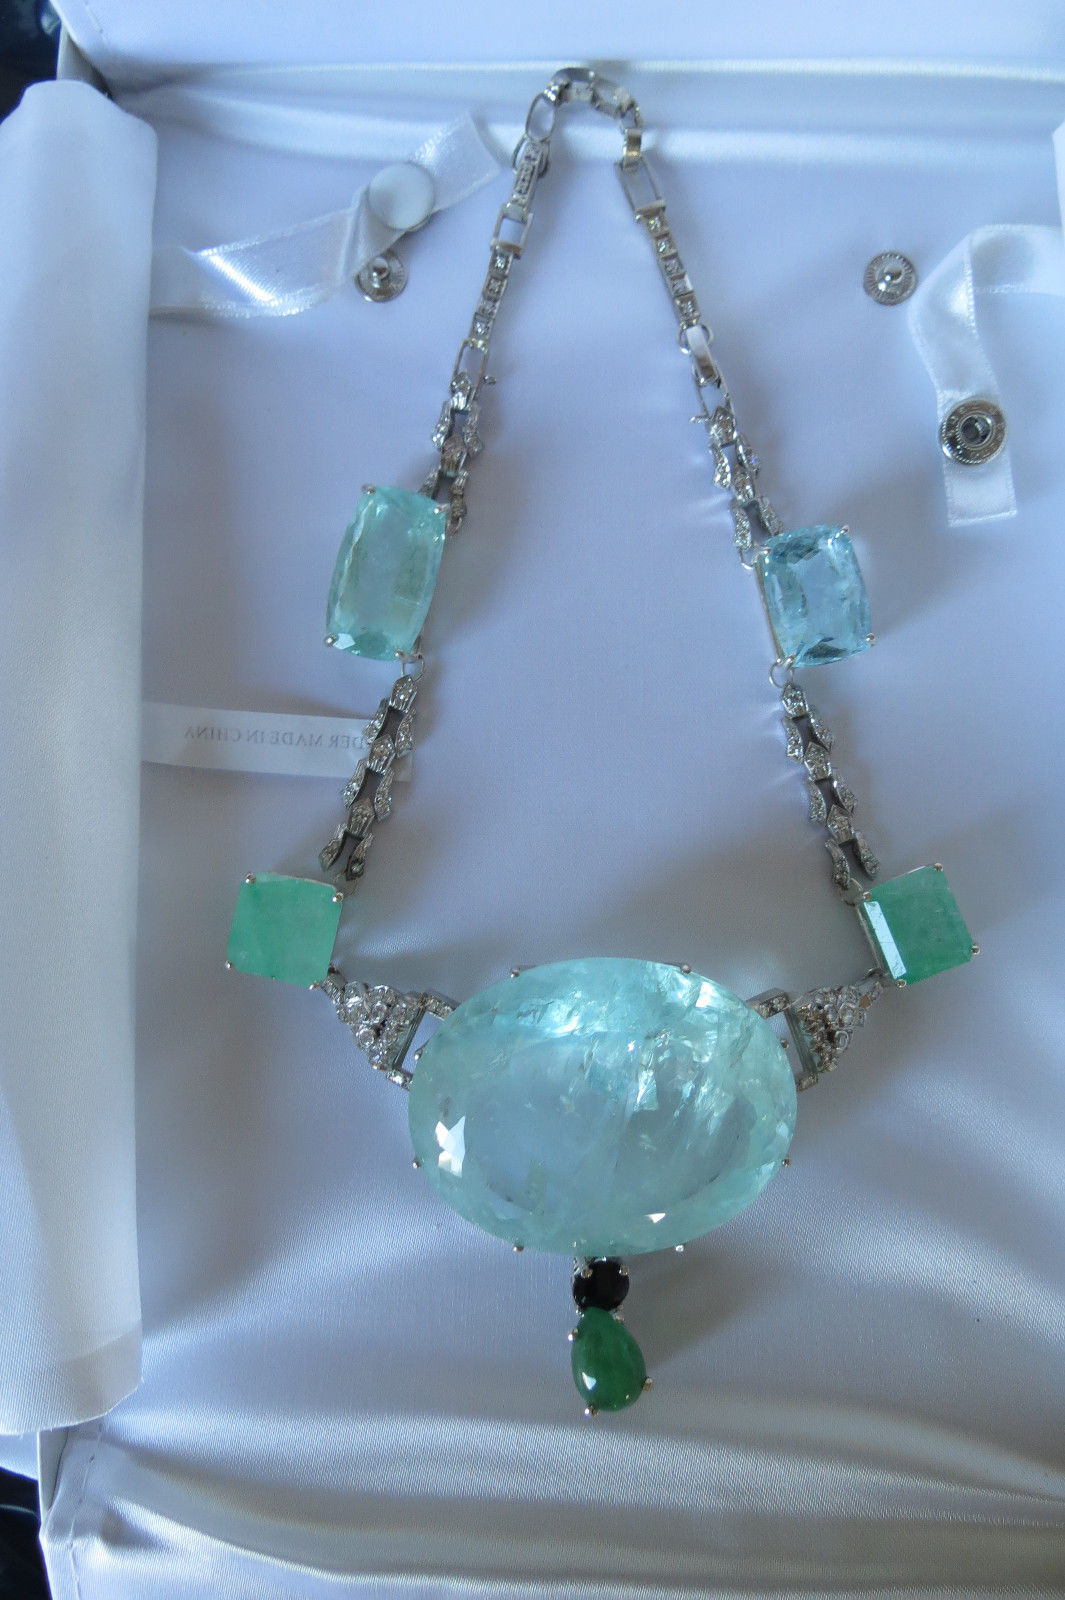 Gigantic Huge 354 ct aquamarine 2.2 ct diamond 22.5 ct emerald 14k gold necklace